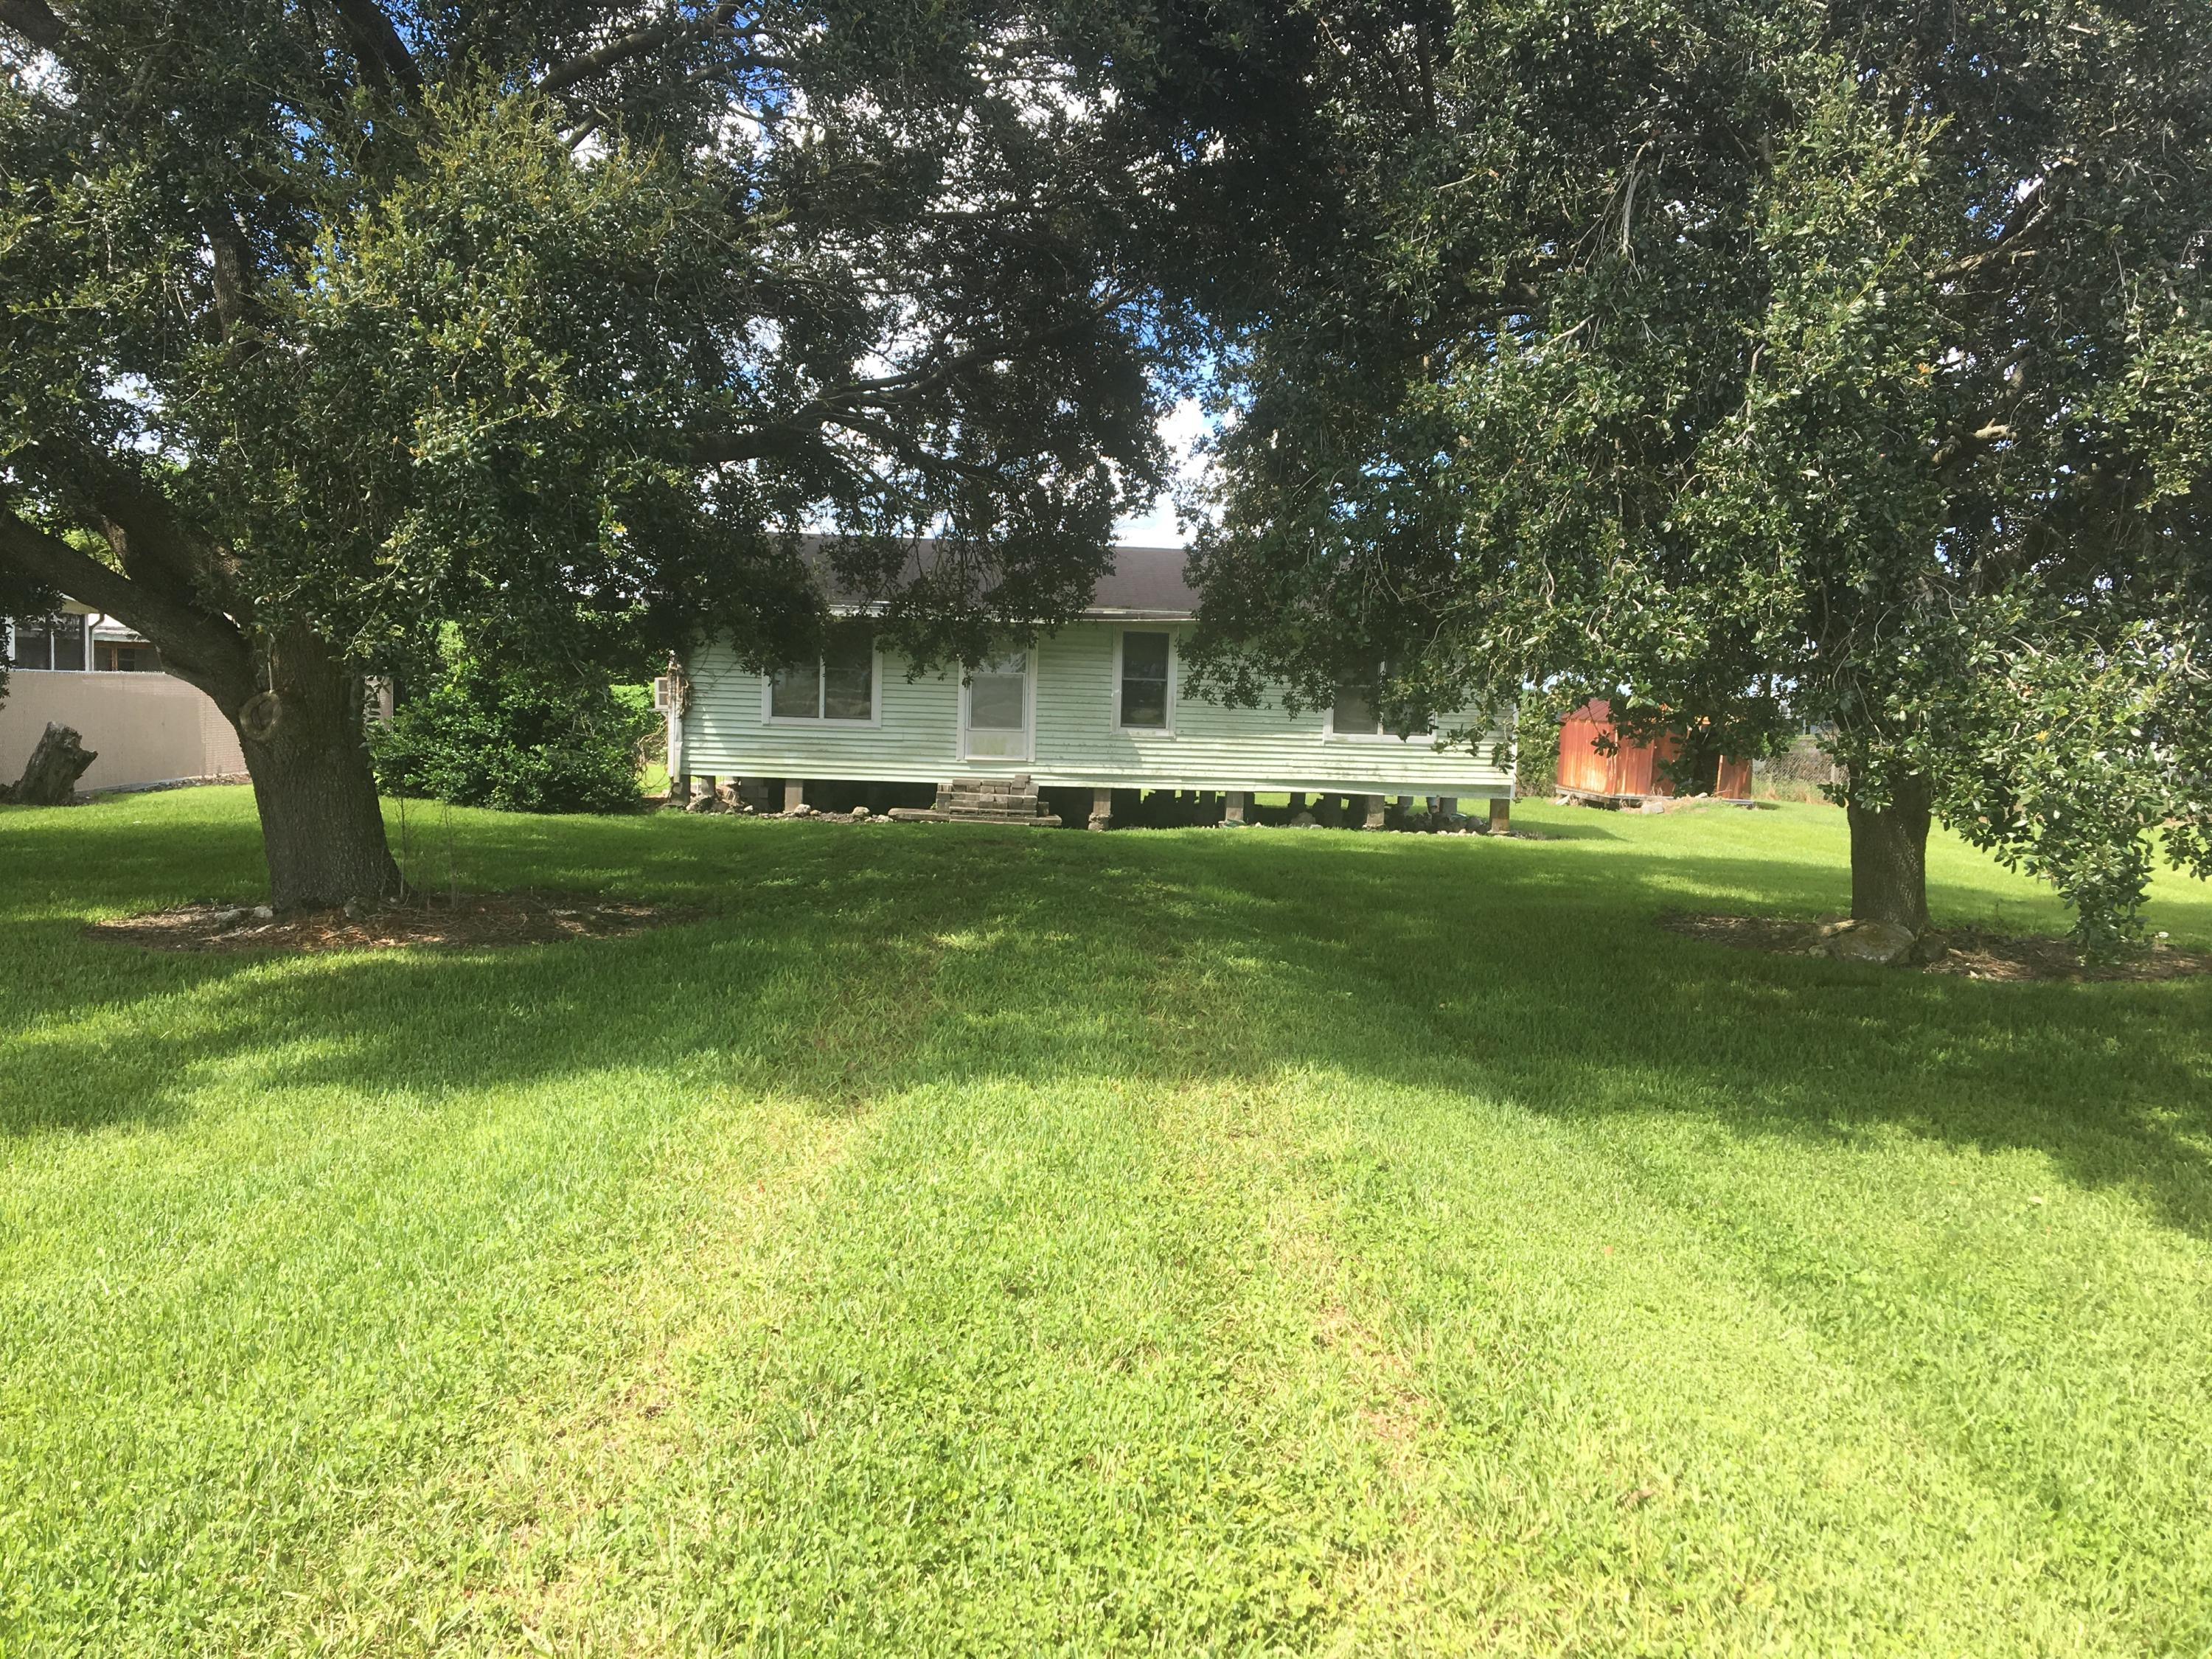 Home for sale in Open subdivision Belle Glade Florida